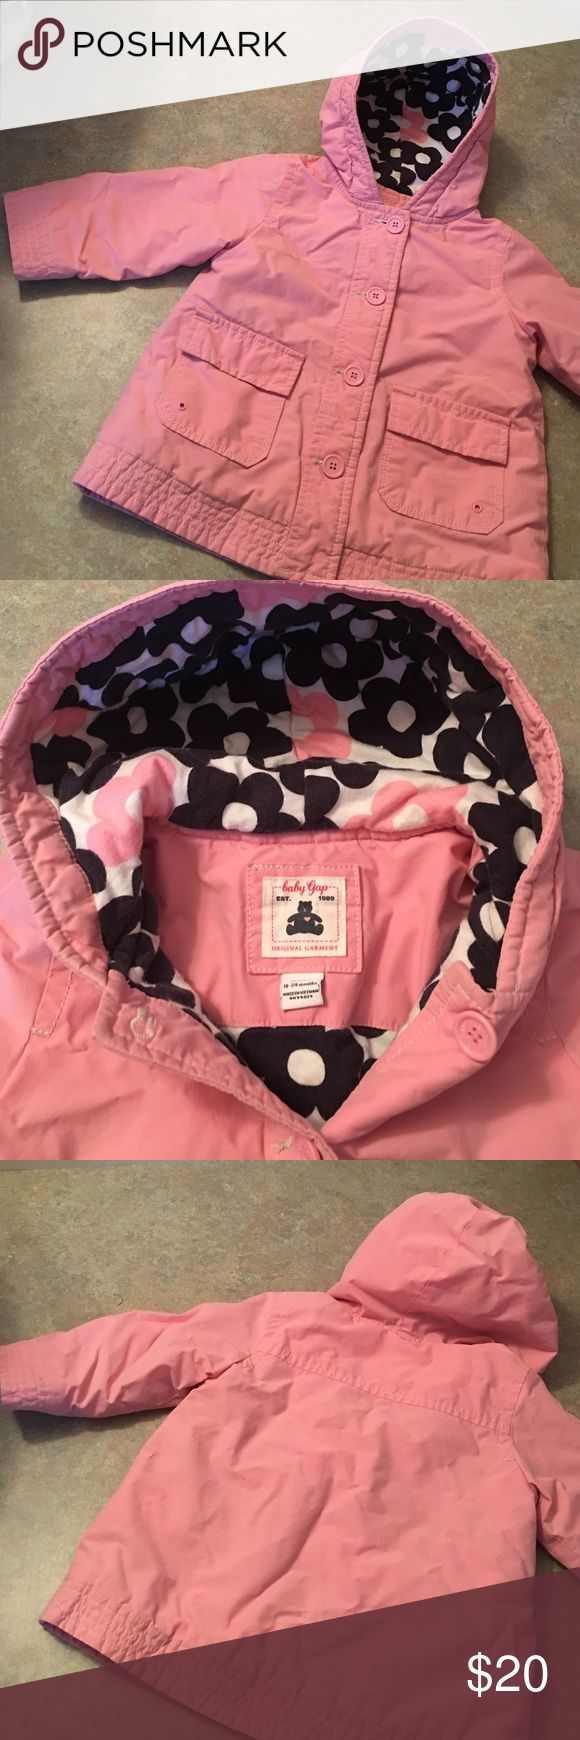 Baby GAP coat 18/24 mths Great used condition! No stains/ holes.. general wear shown on cuffs in pics which is hardly noticed in person! Great little coat for the winter 💟 flower detail in the hood is white pink and navy blue. Gap Jackets & Coats